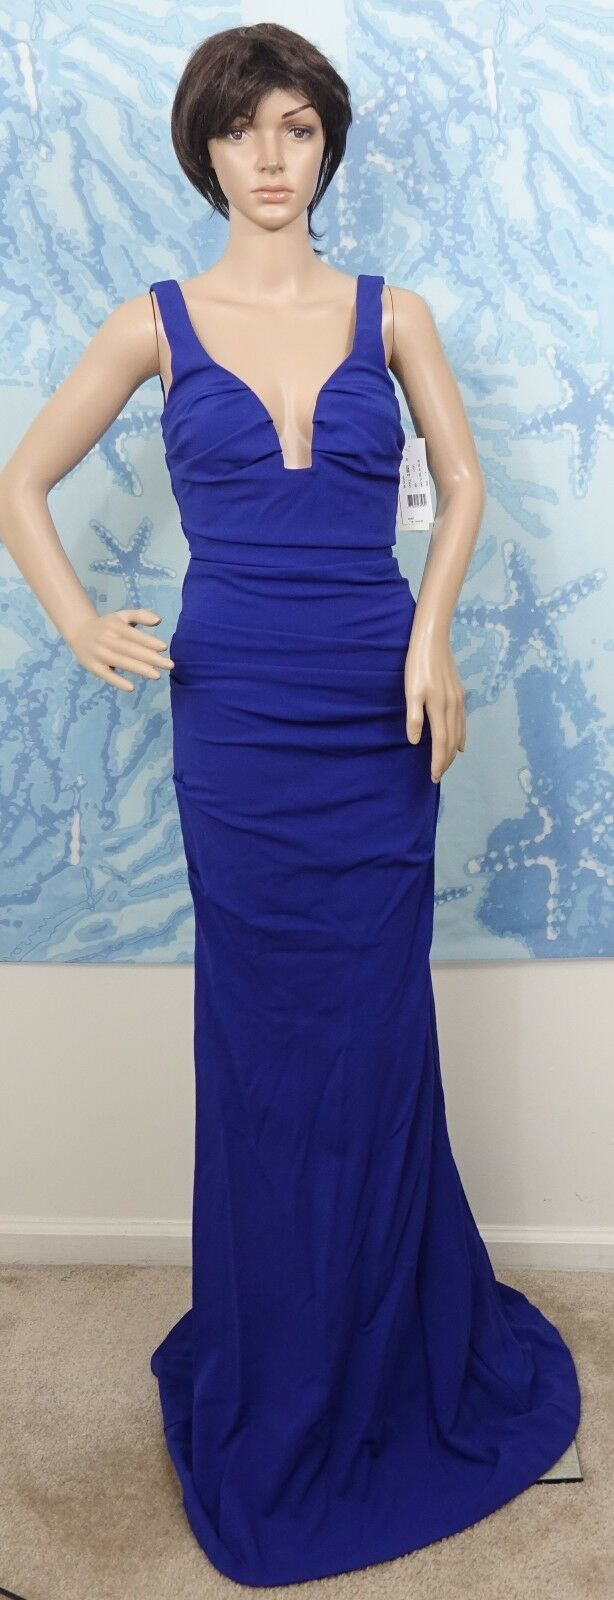 Nicole Miller Plunge Structured gathered berry or royal royal royal Jersey Gown dress,4 or 6 7eec0d